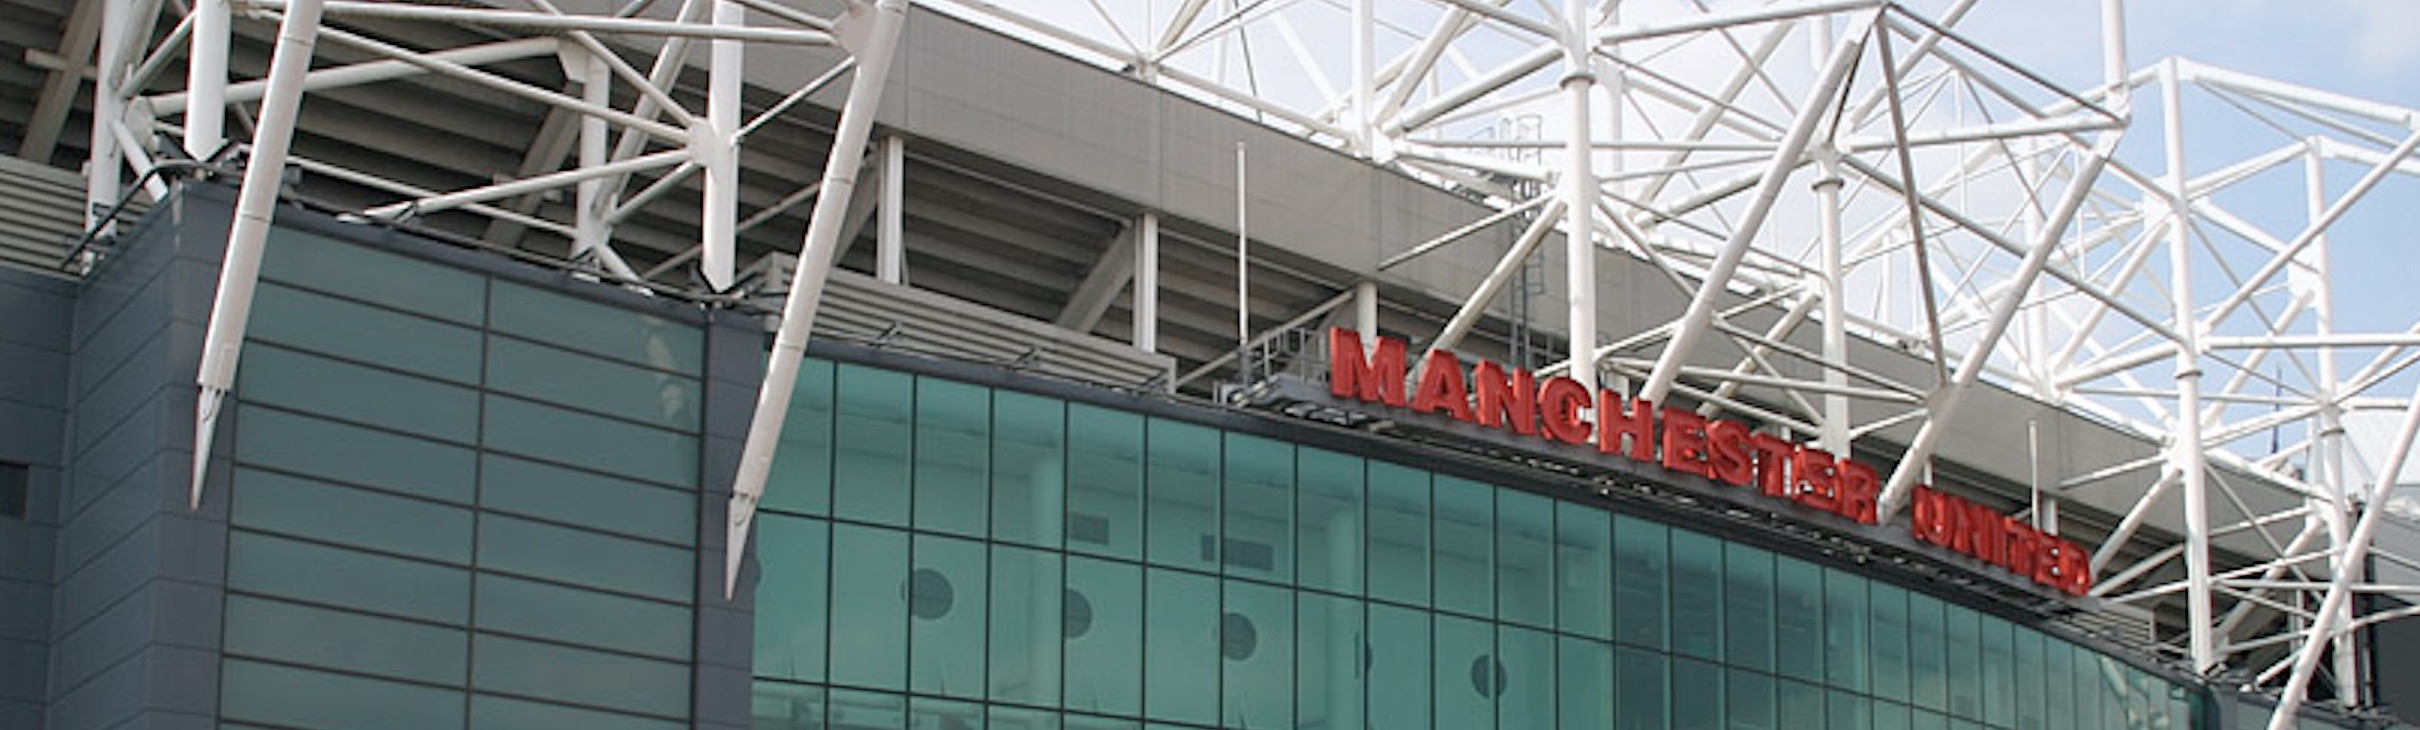 Man United v Leicester / Daytrip by Coach & Ferry